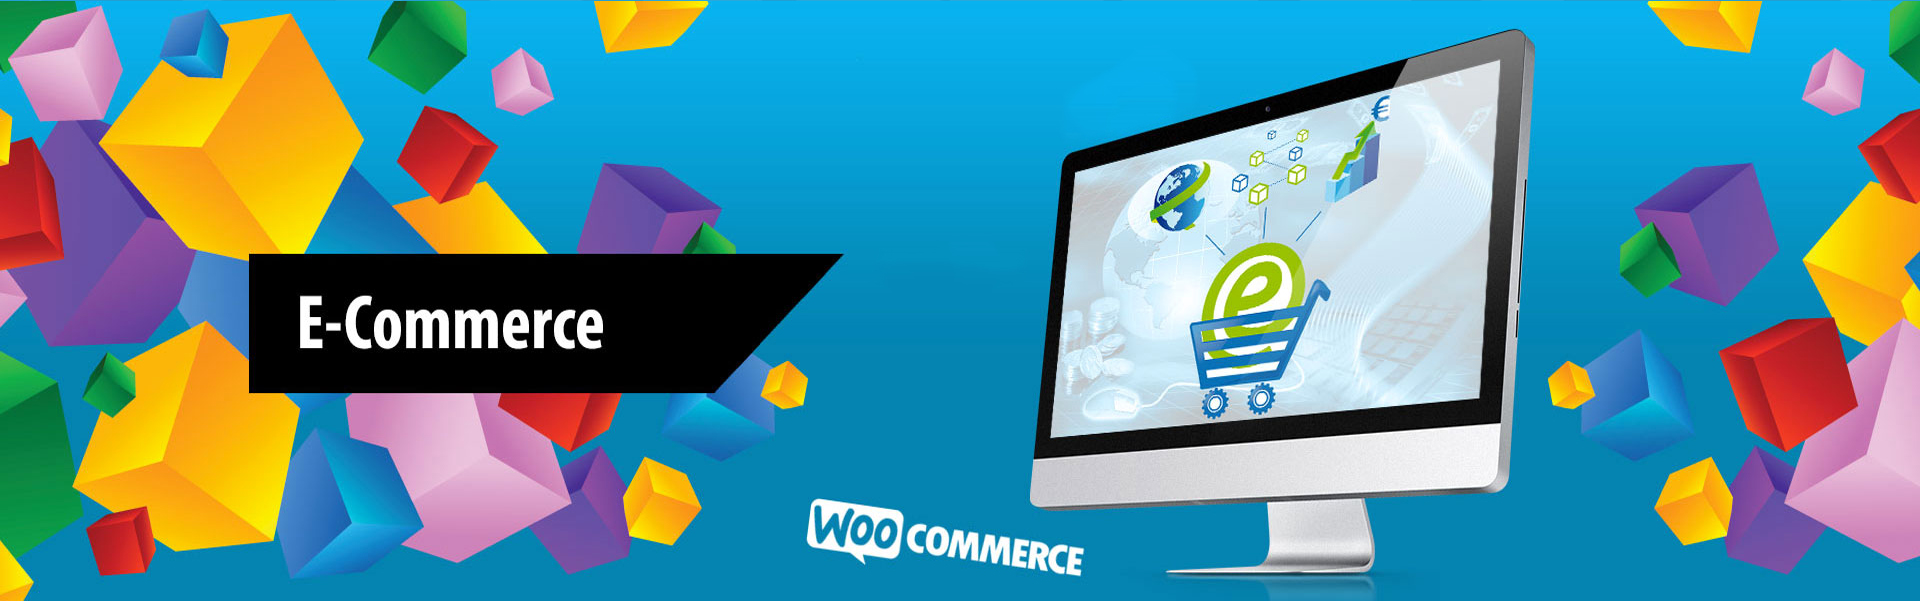 woocommerce-website-development-company-in-bangalore-india